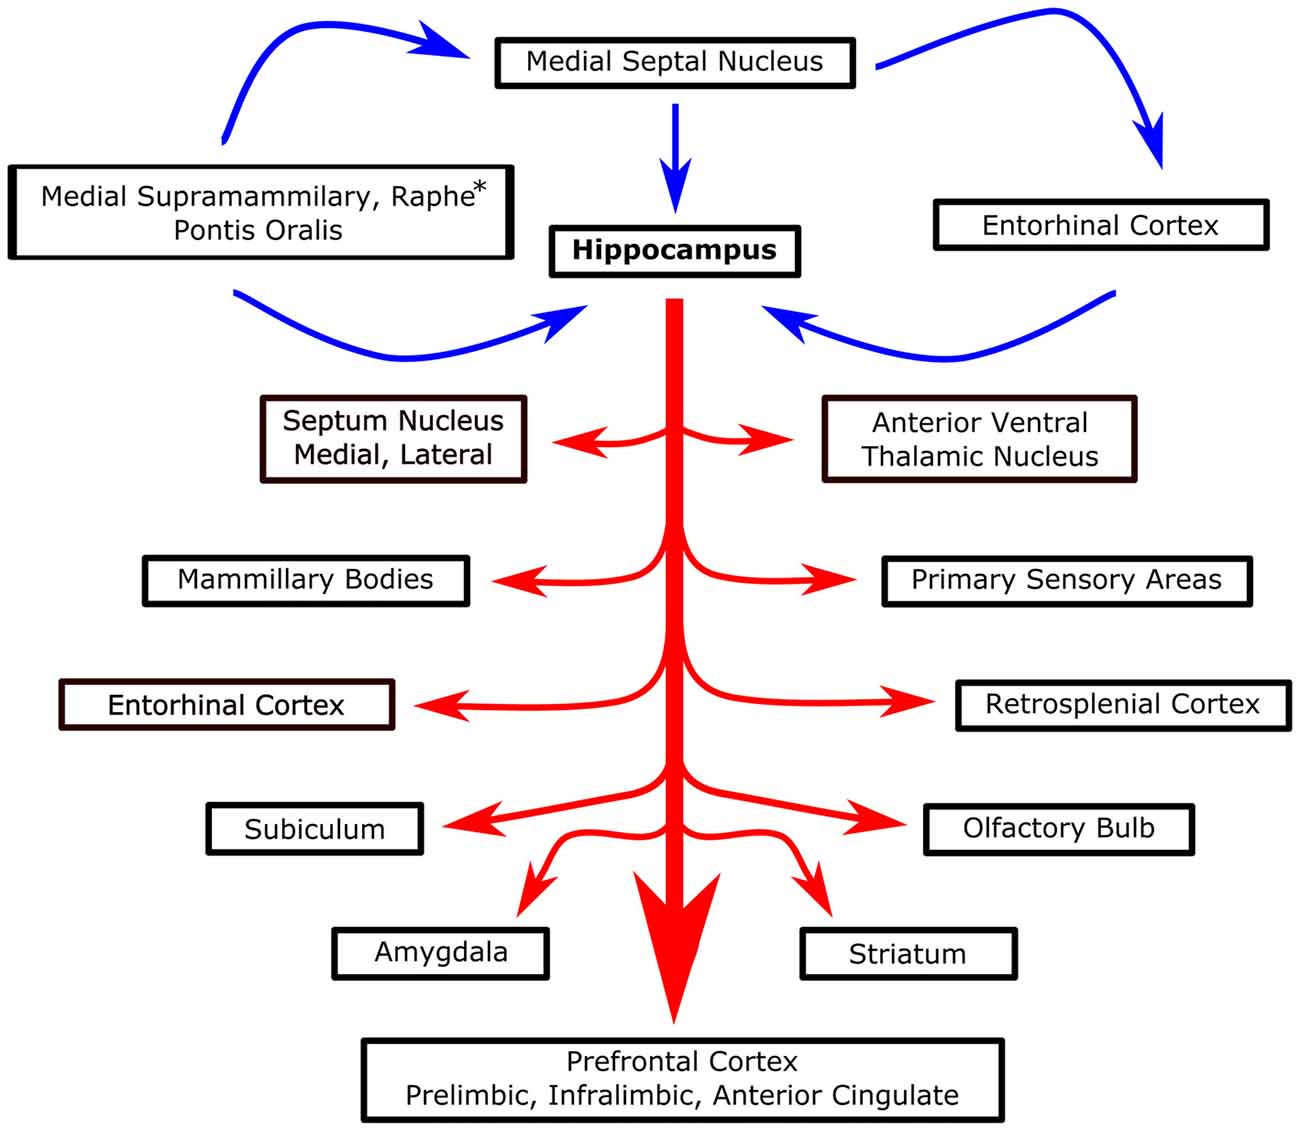 Frontiers Making Waves In The Brain What Are Oscillations And Series Circuit Wchaverri39s Blog